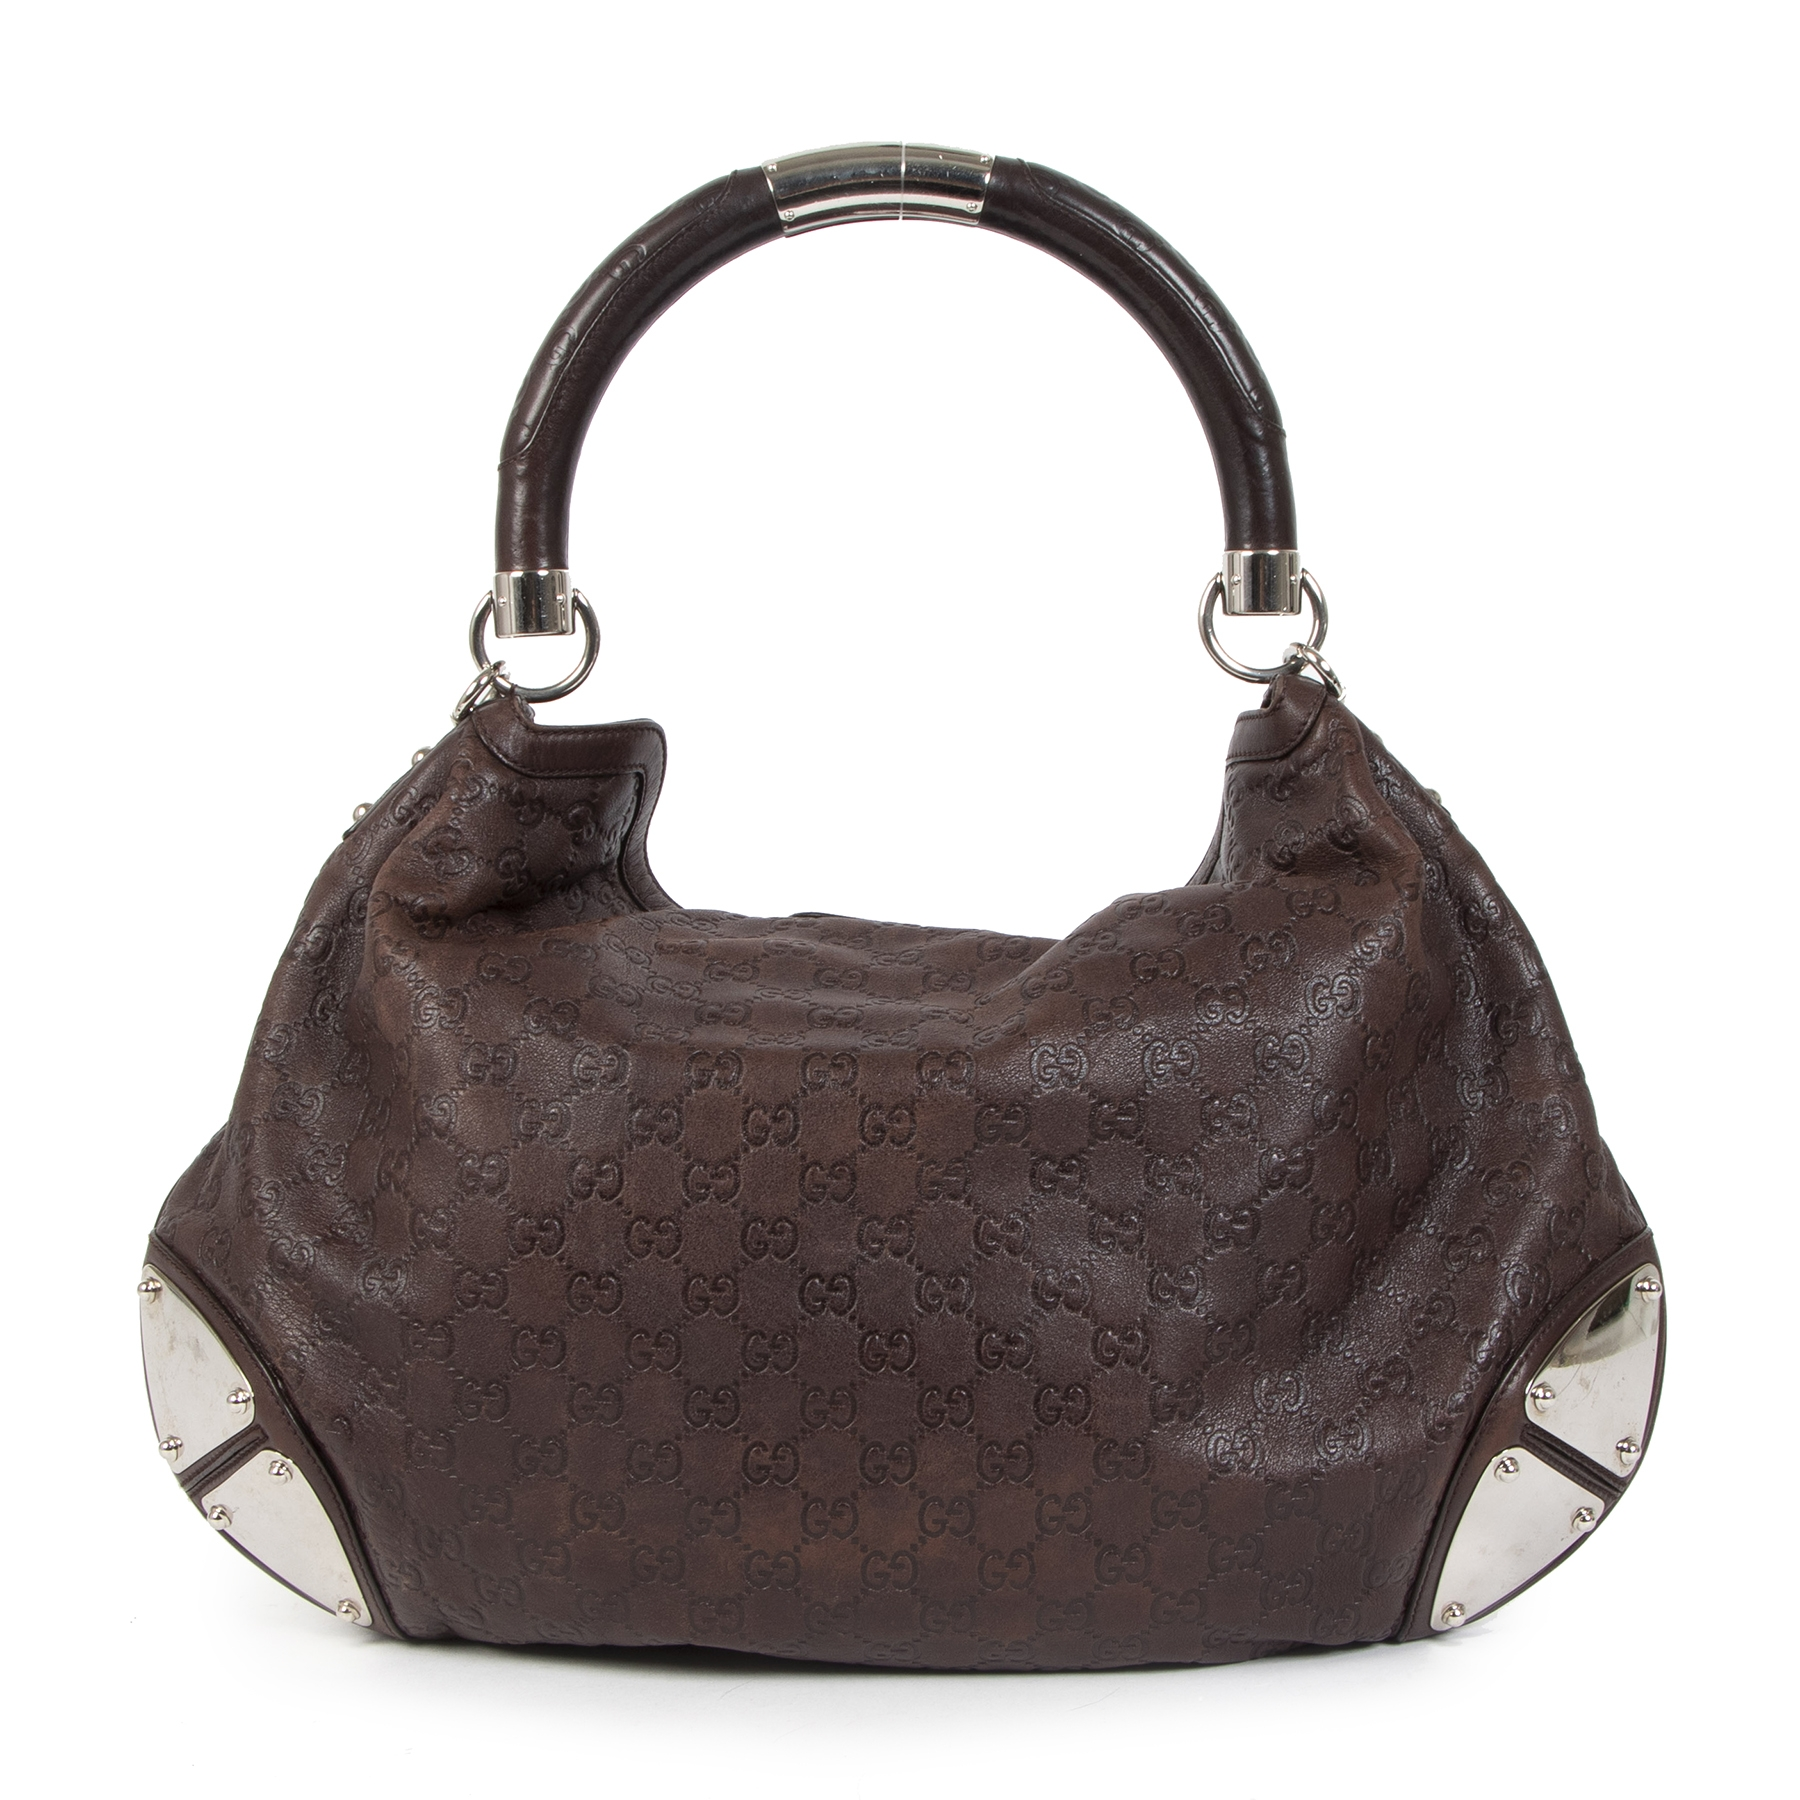 Buy authentic secondhand Gucci bags at labelLOV Antwerp